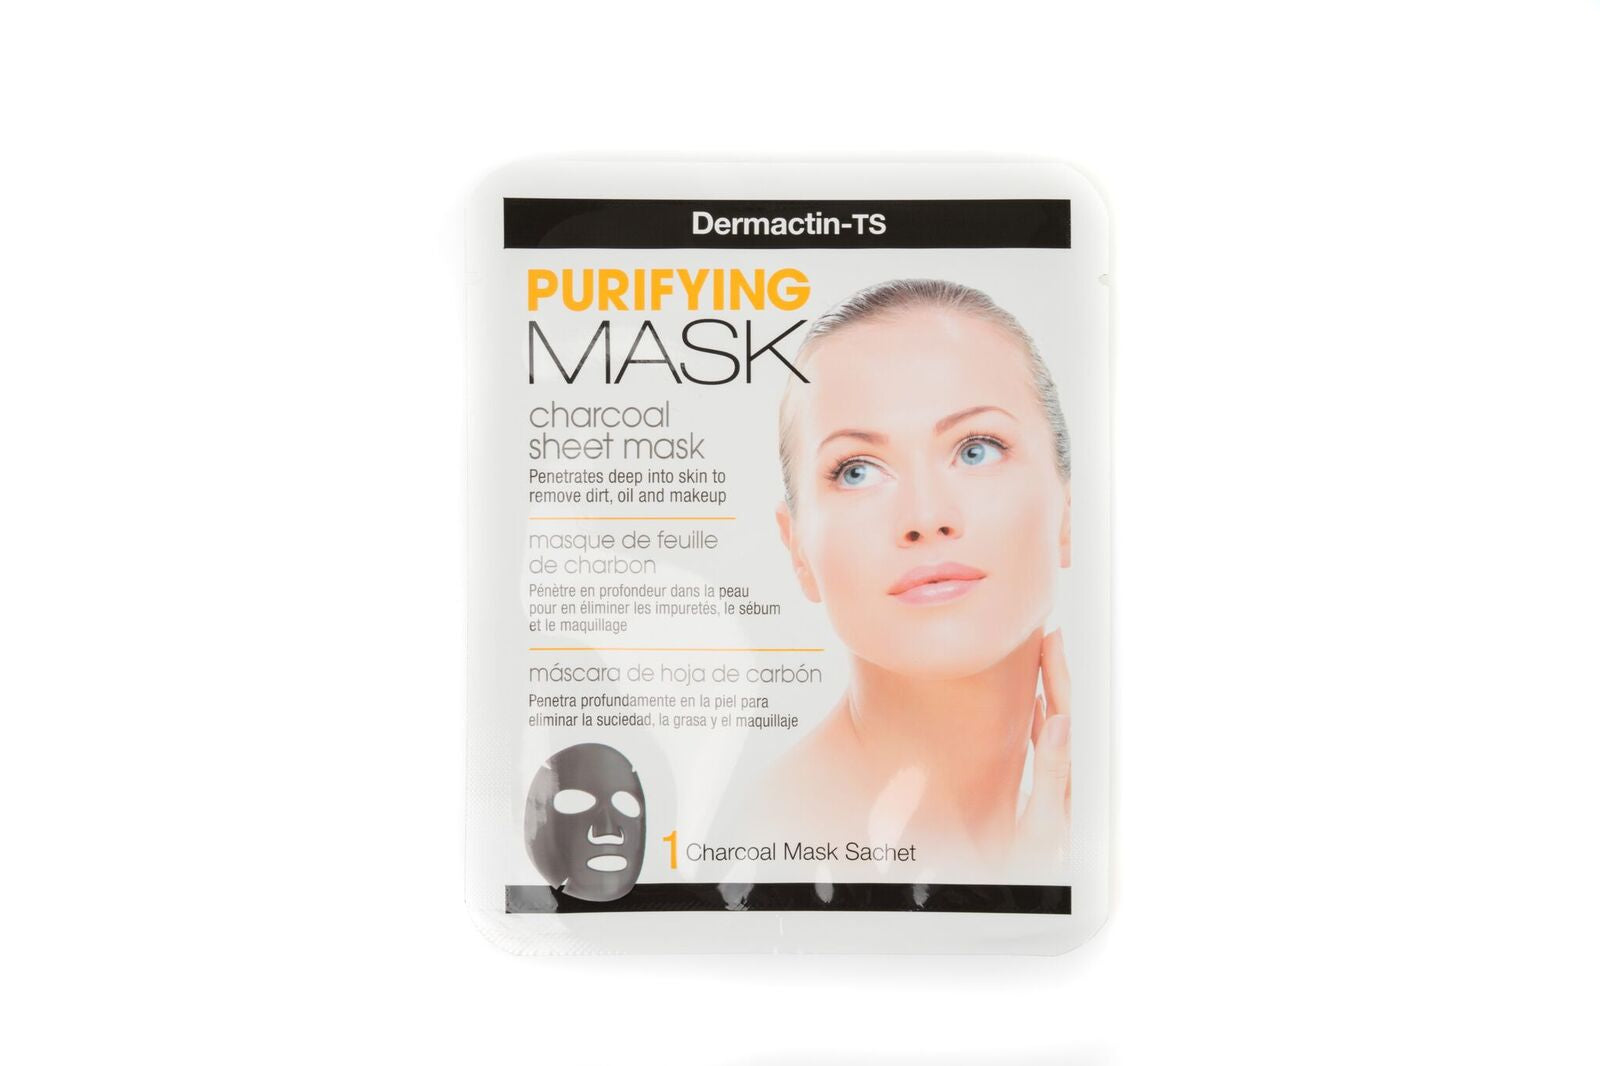 Pore Refining Charcoal Sheet Mask - Single